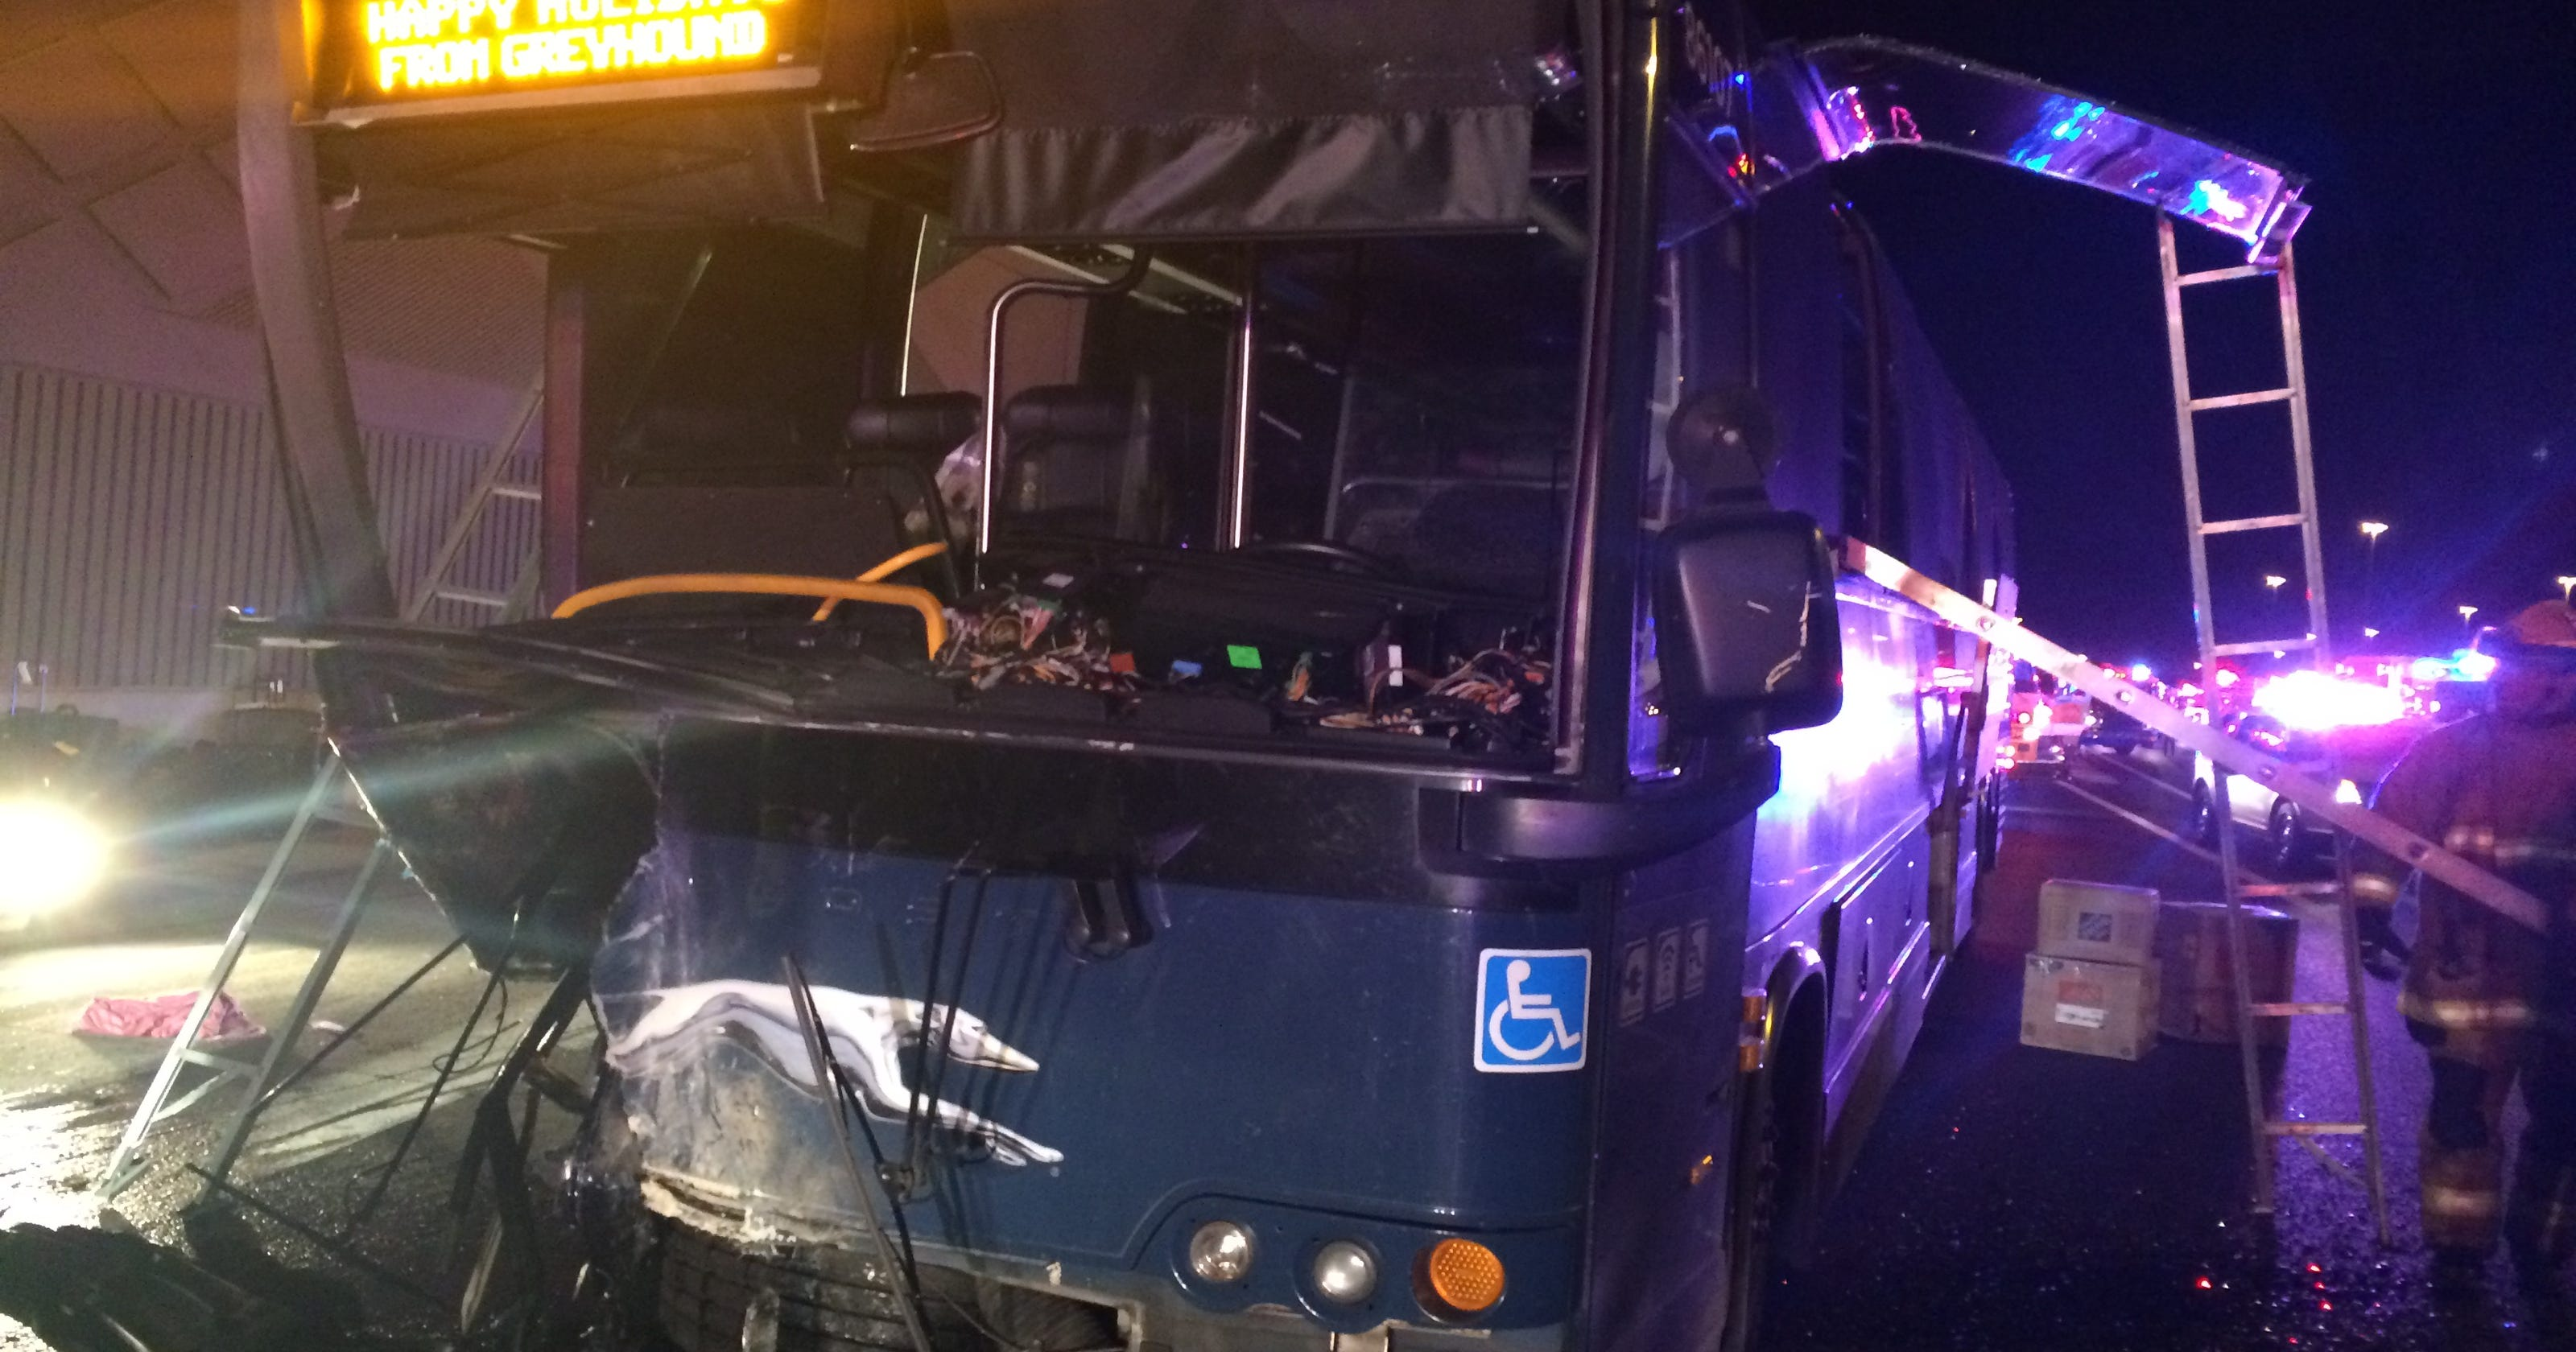 Wrong-way driver crashes into bus after Thanksgiving